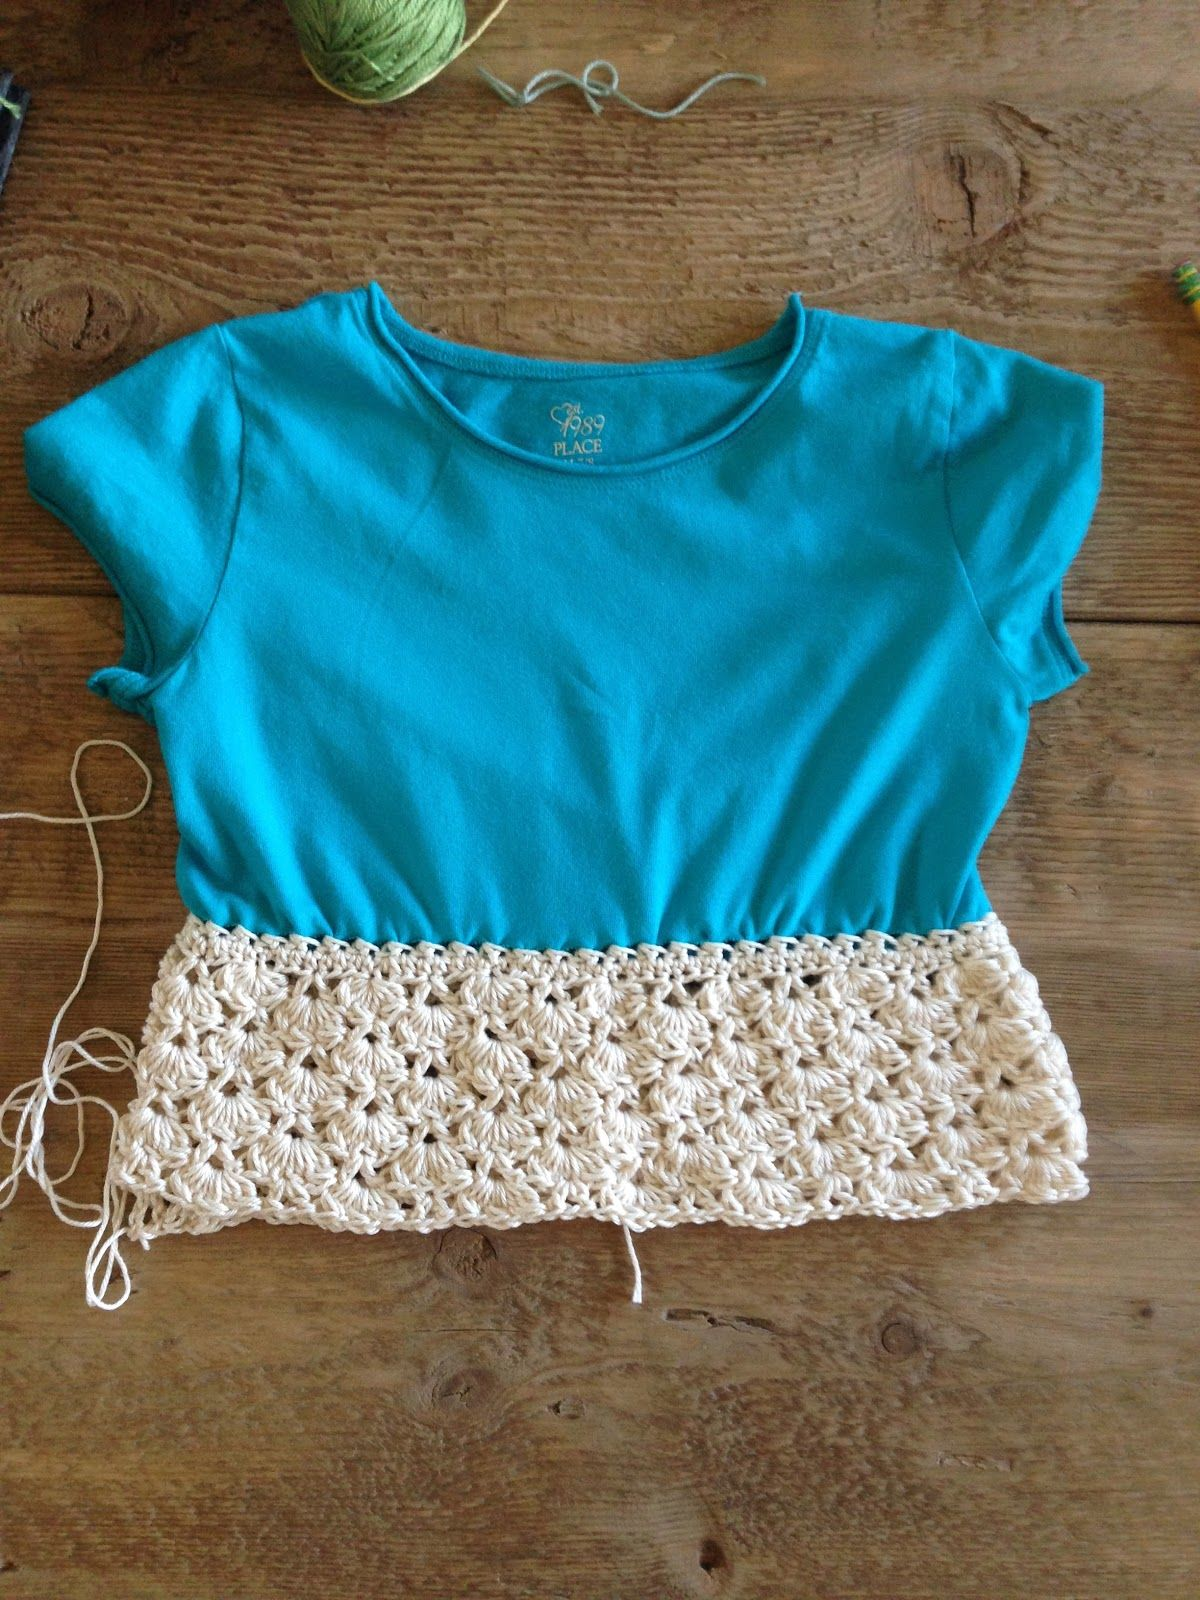 Annoos crochet world up cycled little girl t shirt dress free annoos crochet world up cycled little girl t shirt dress free pattern bankloansurffo Image collections